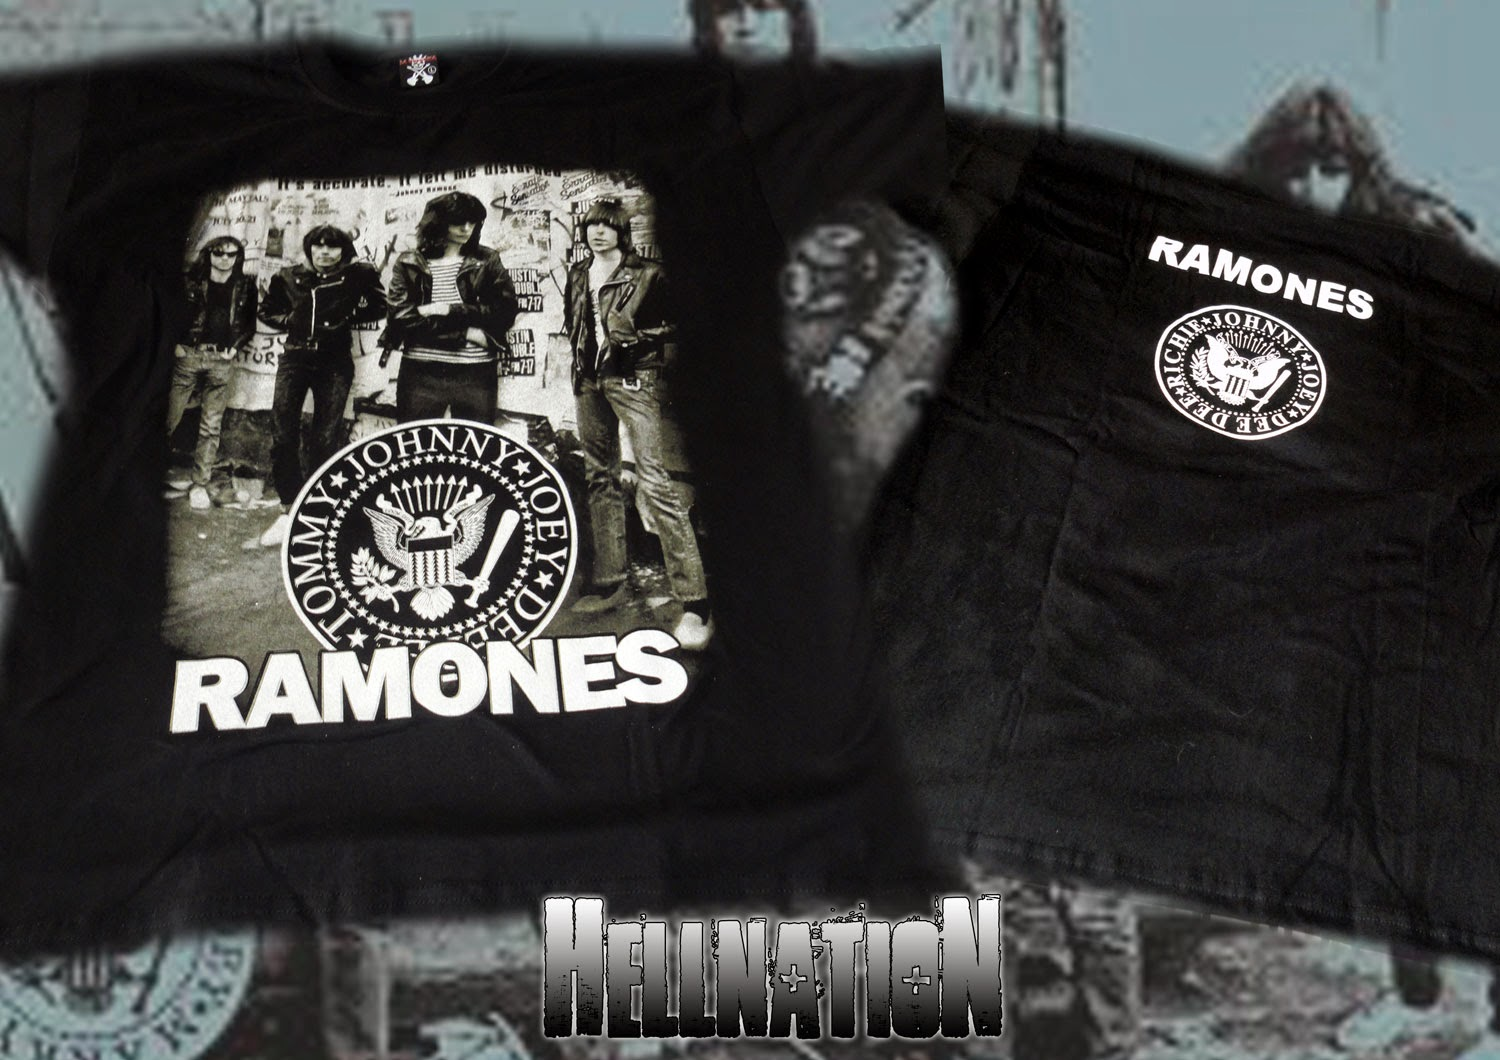 Here are all the products for Ramones. If it is not hyper linked, you can request that it be out online for purchase, otherwise, it is coming soon.